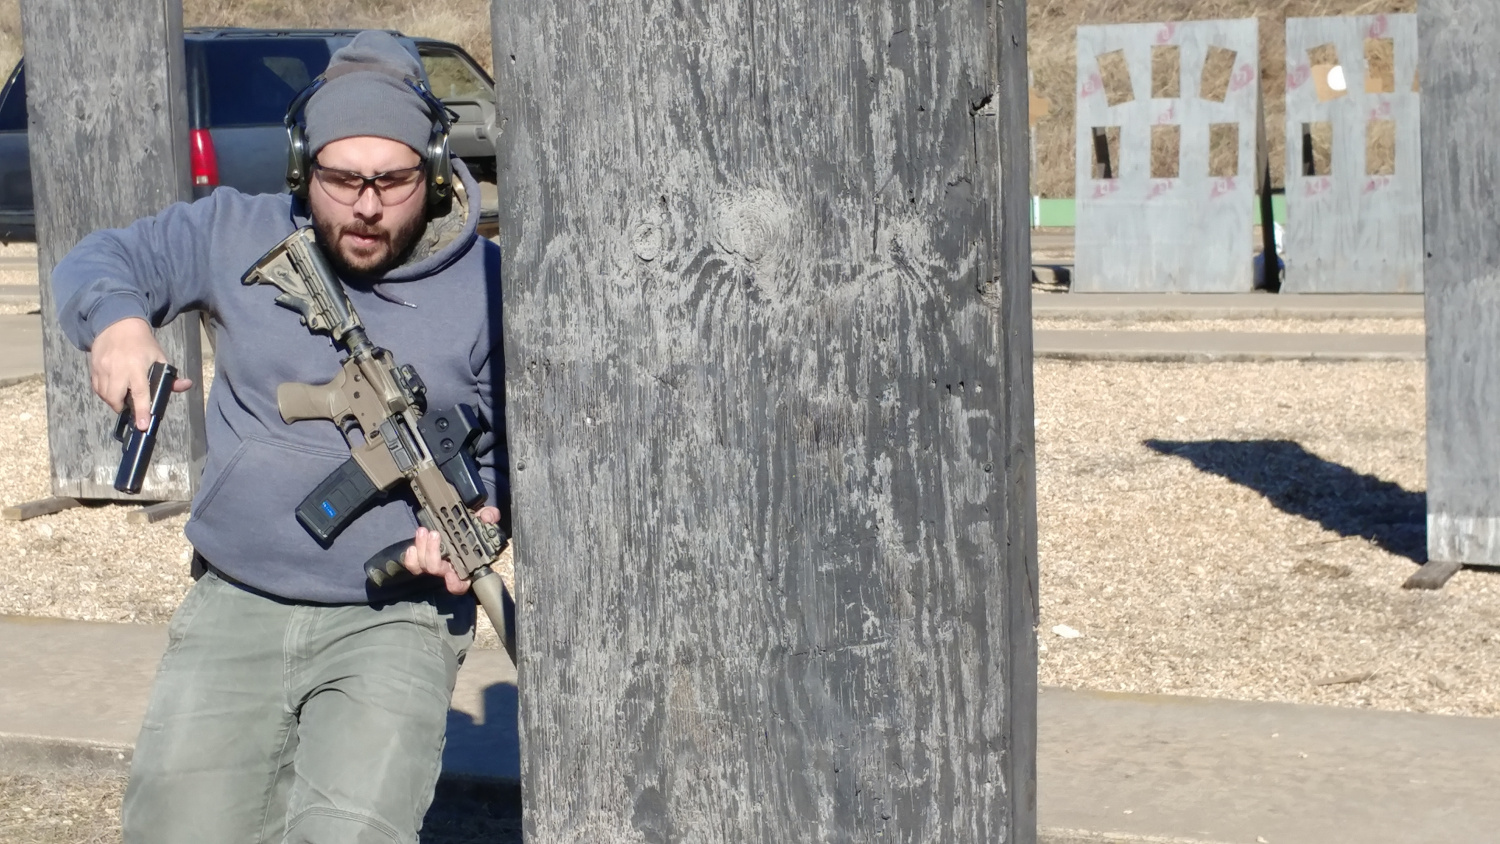 In this picture, the author had to transition to a Glock after that fancy M4 was out of ammo. Chambering a round one-handed, on the move, while getting to cover is possible, but completely unnessesary if you just carry a loaded gun.